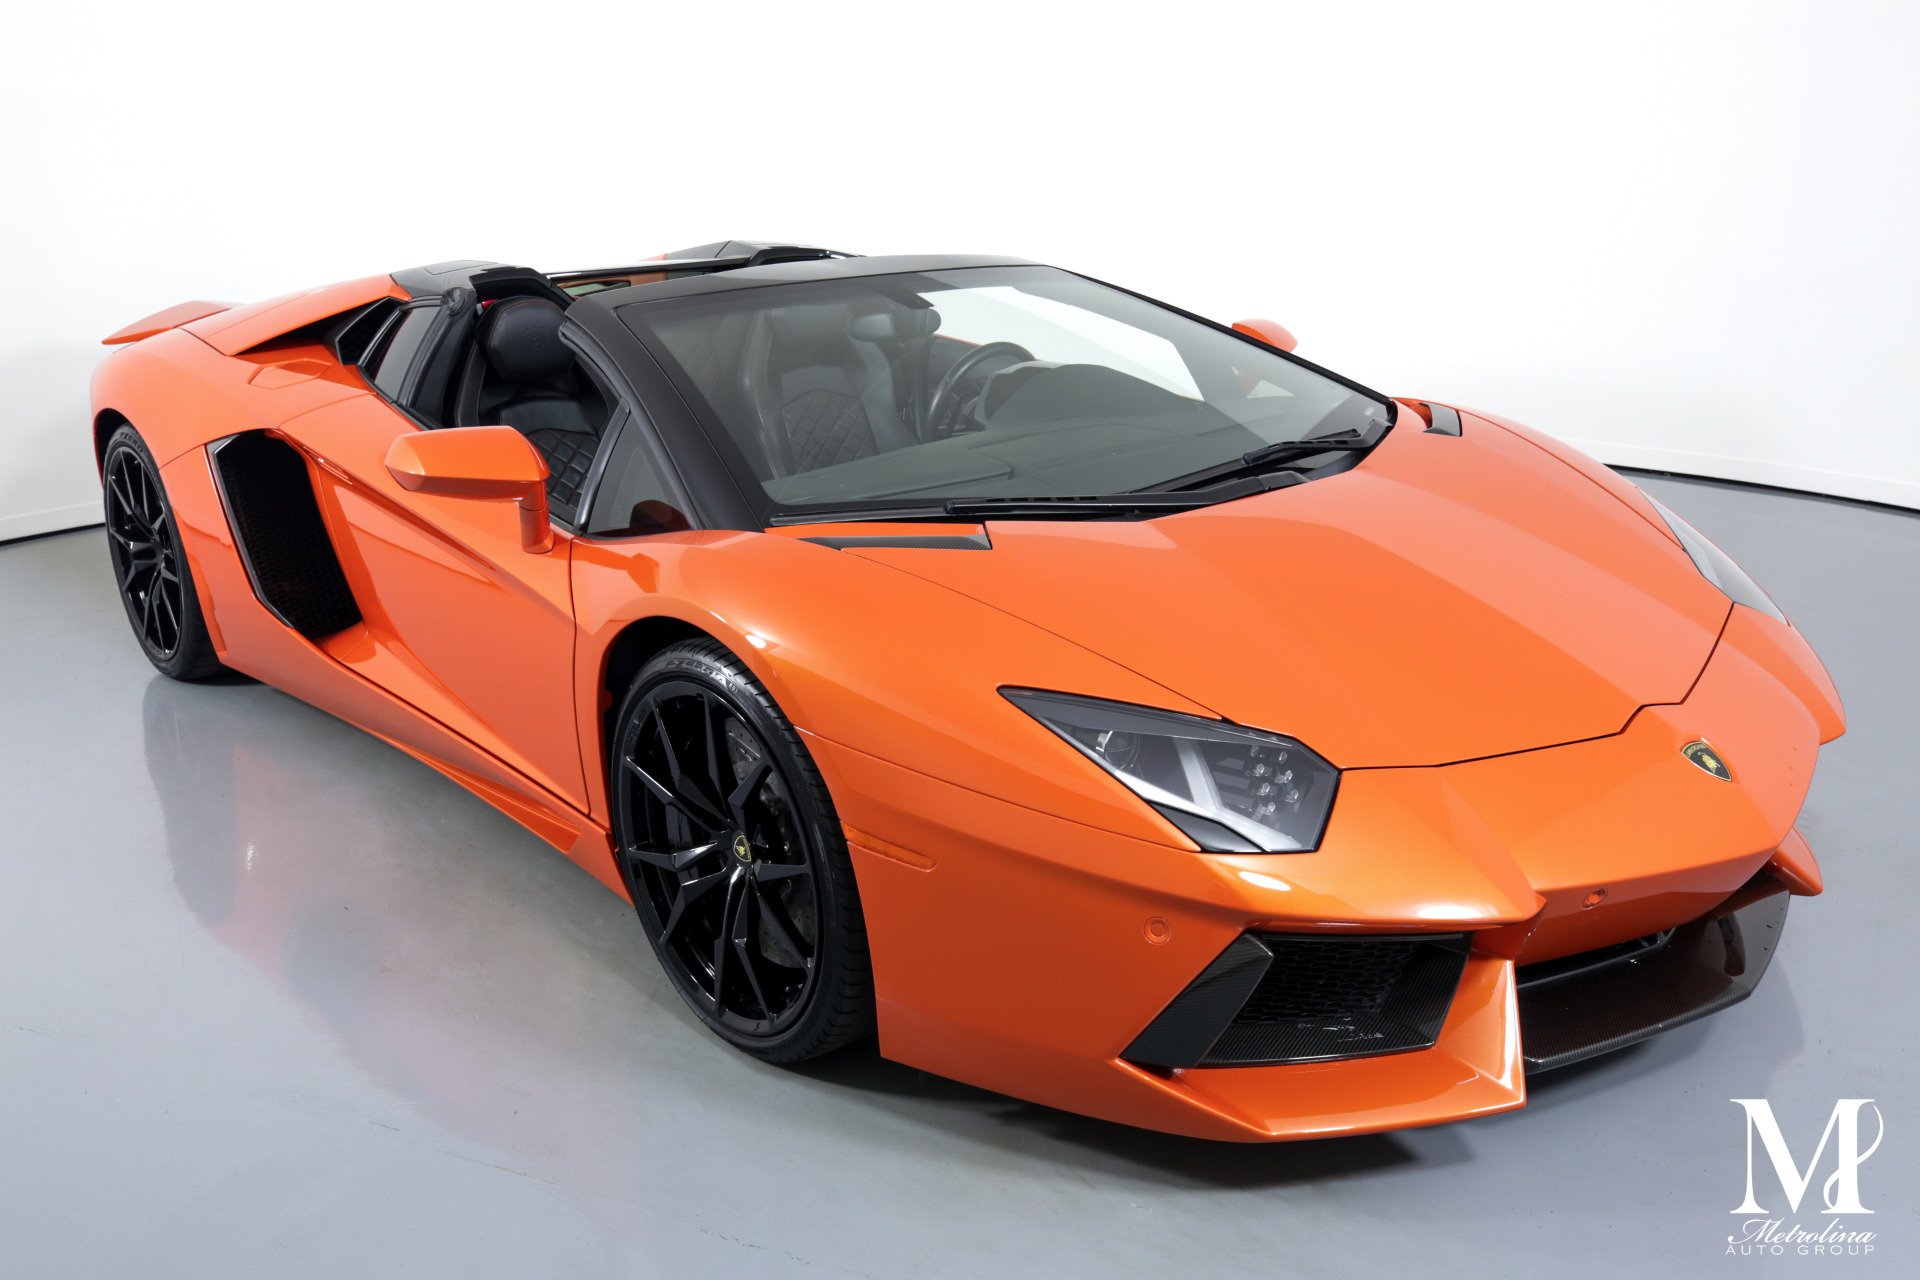 Used 2015 Lamborghini Aventador LP 700-4 for sale $399,996 at Metrolina Auto Group in Charlotte NC 28217 - 3